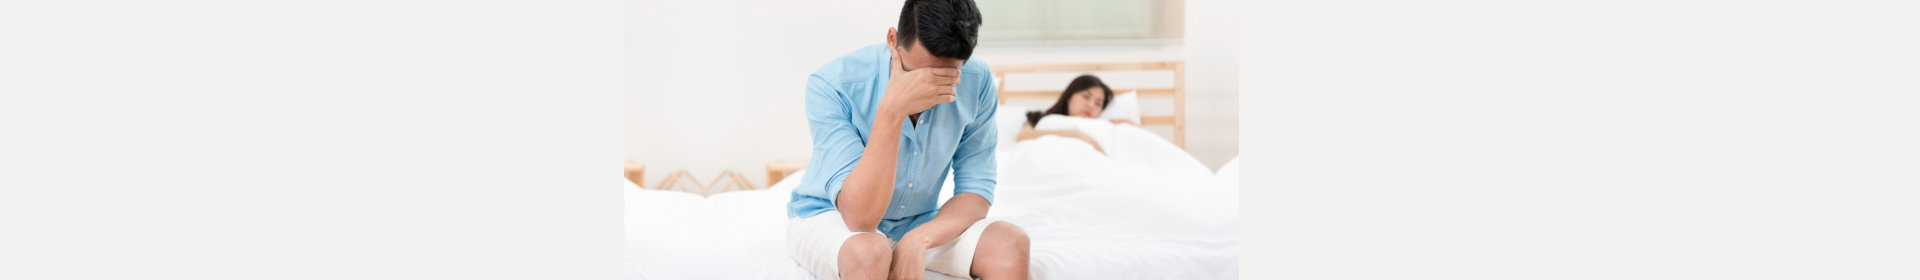 Husband unhappy and disappointed in the erectile dysfunction during sex while his wife sleeping on the bed.